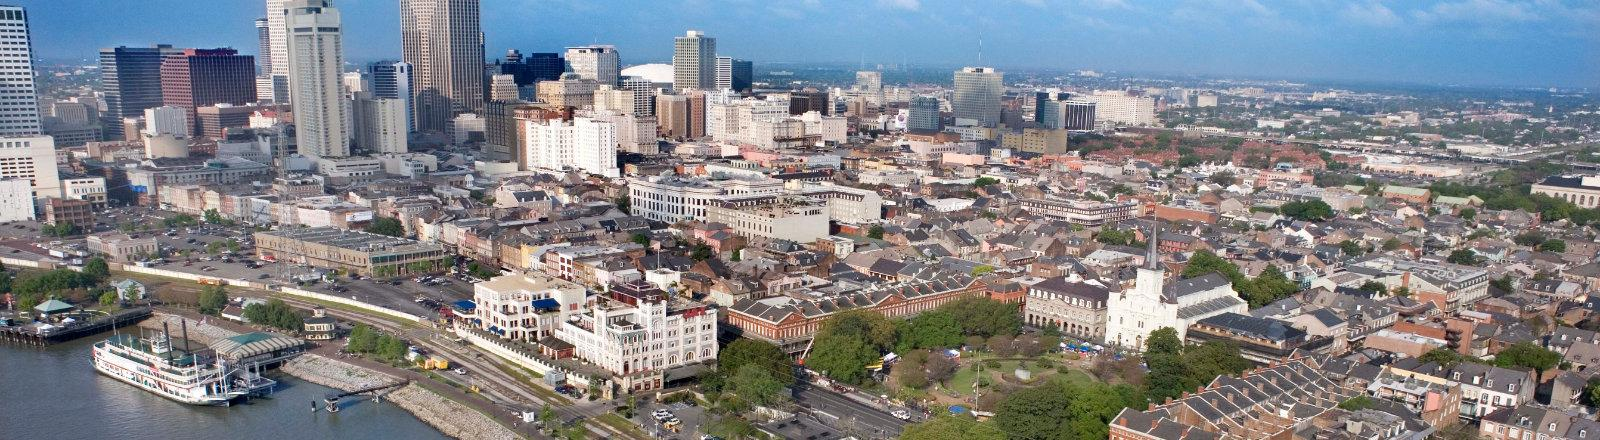 New Orleans Aerial Shot